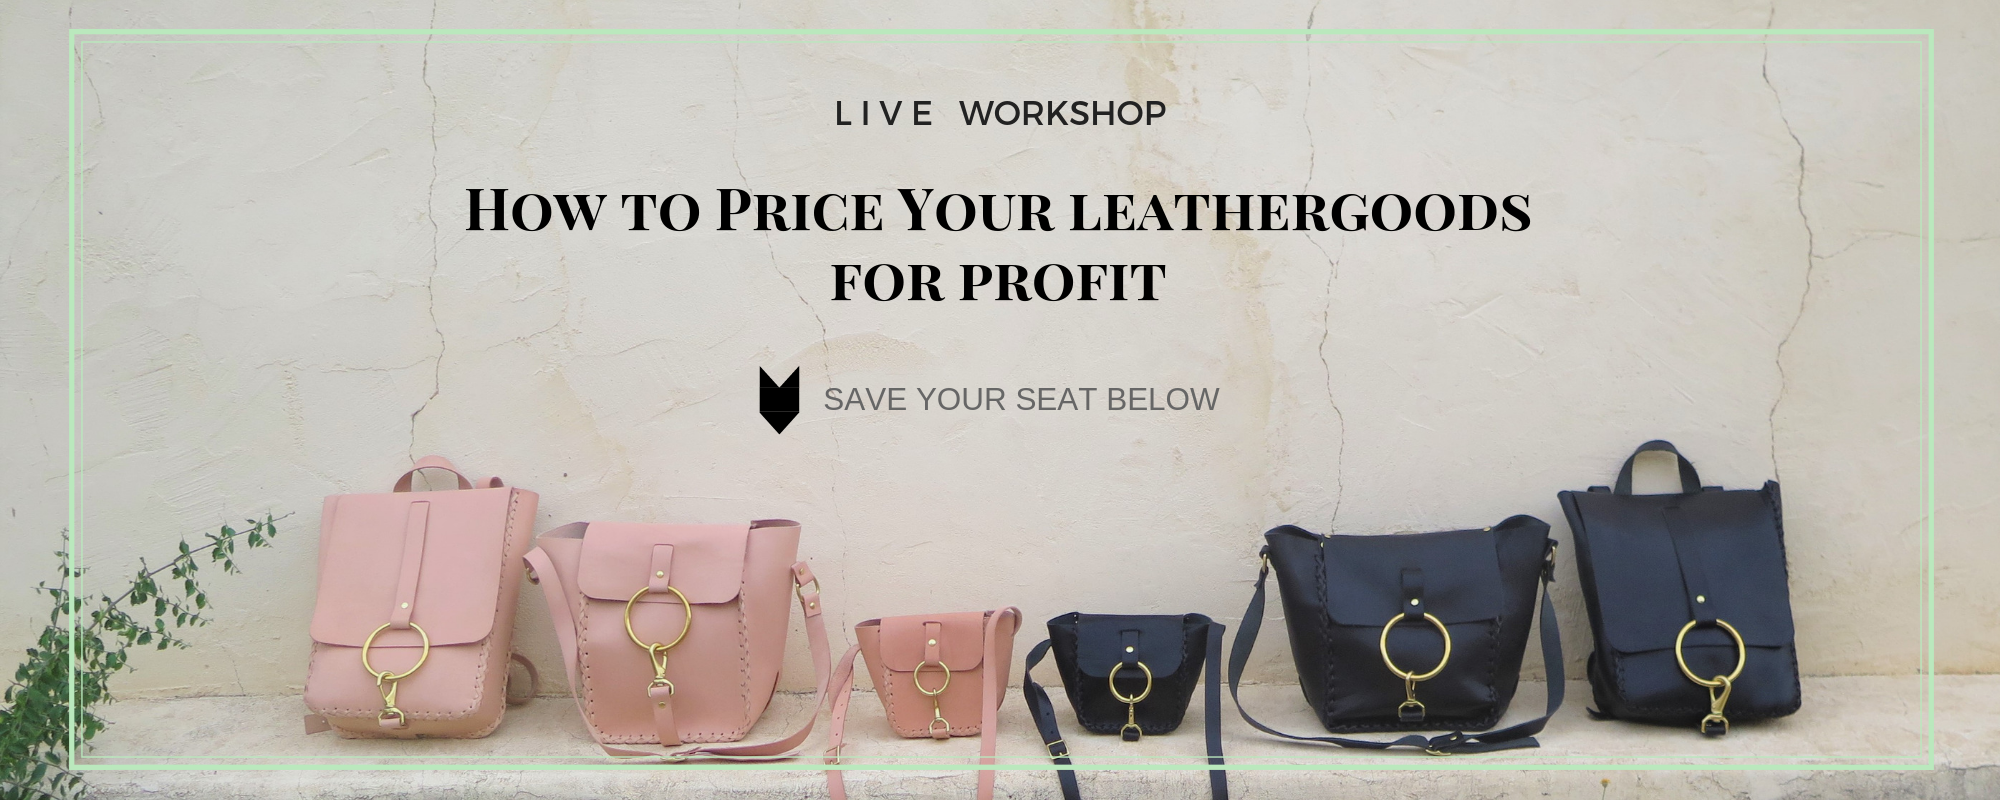 How to Price Your leathergoods for profit.png